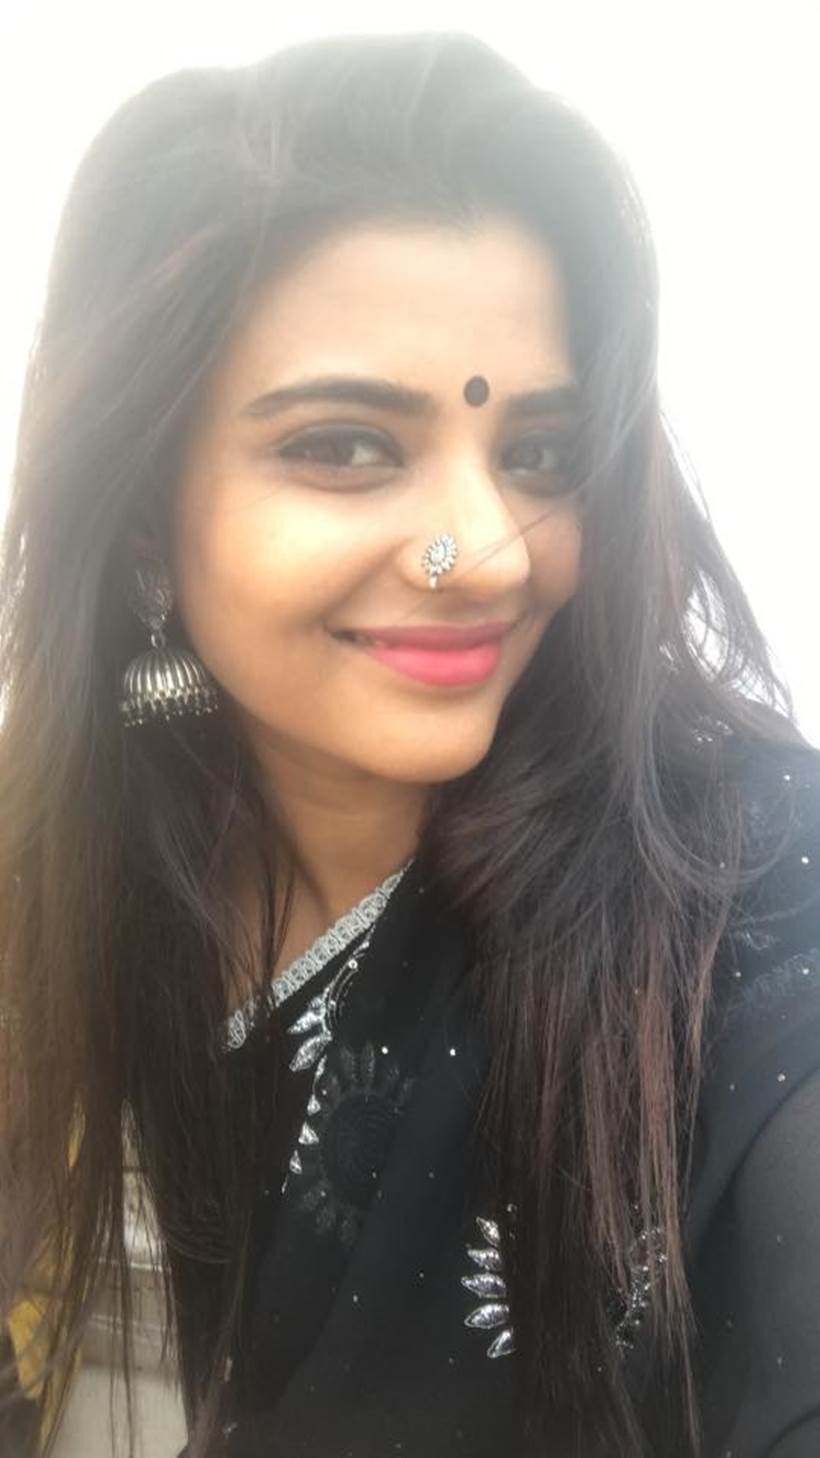 Daddy, Aishwarya Rajesh, daddy female lead Aishwarya Rajesh, Arjun Rampal, who is Aishwarya Rajesh, Aishwarya Rajesh age, Aishwarya Rajesh hot photos, Aishwarya Rajesh news, Aishwarya Rajesh photos